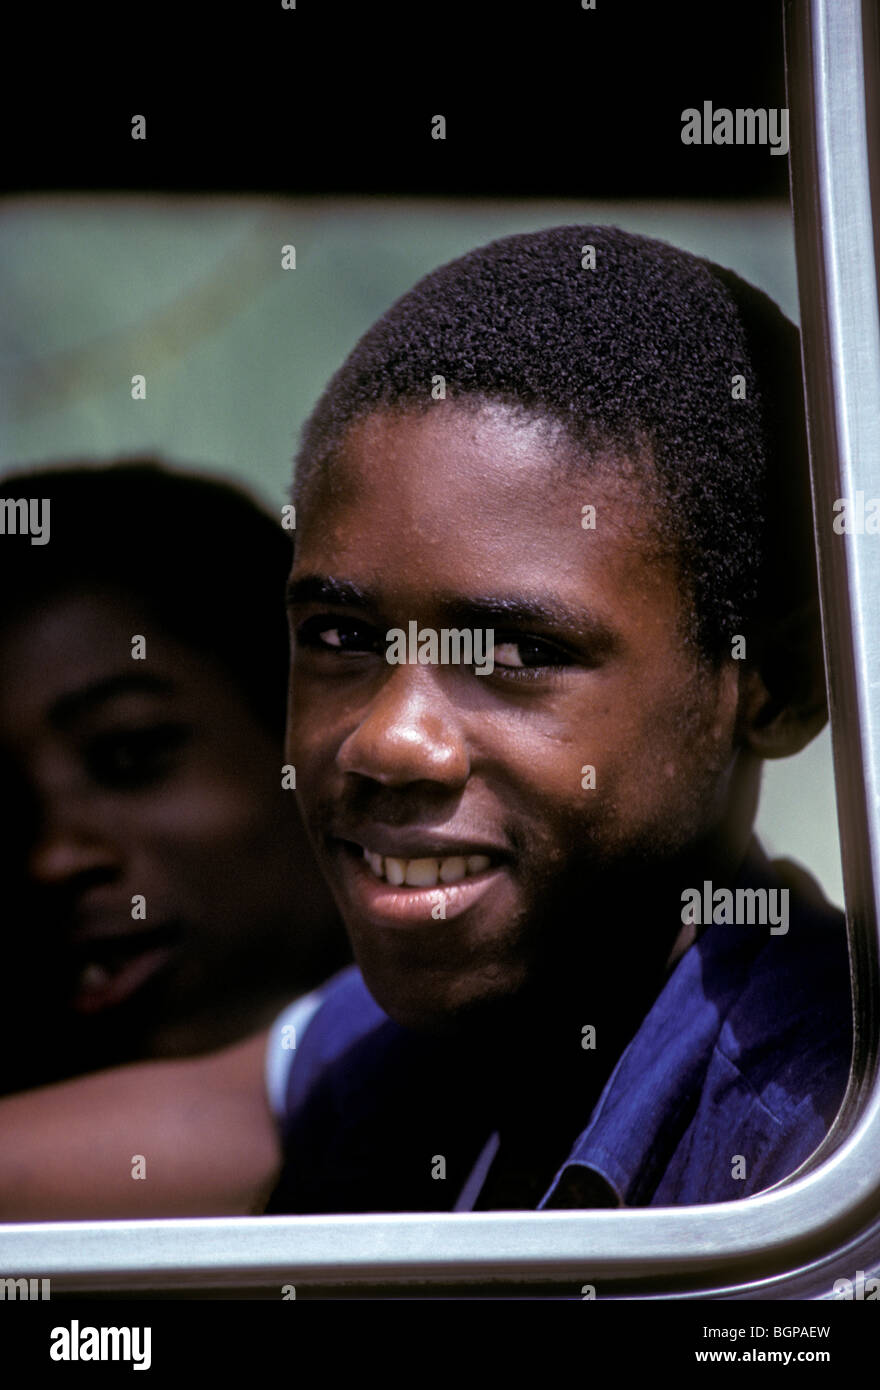 Martinican boy, Martinican, boy, male student, student on school bus, student, child, school bus, Le Marin, Martinique, - Stock Image